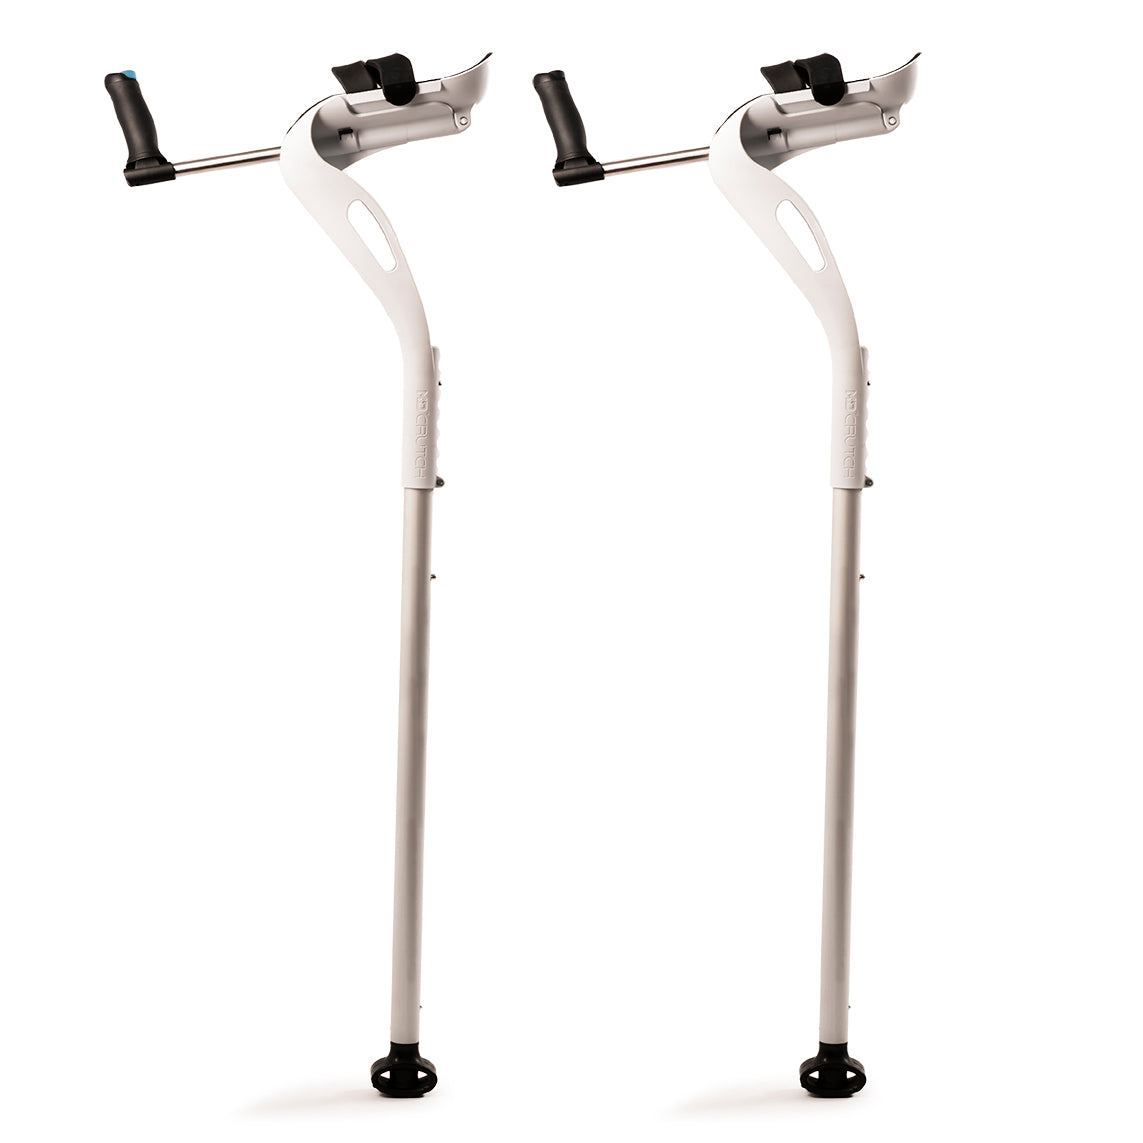 Pair of M+D Crutches